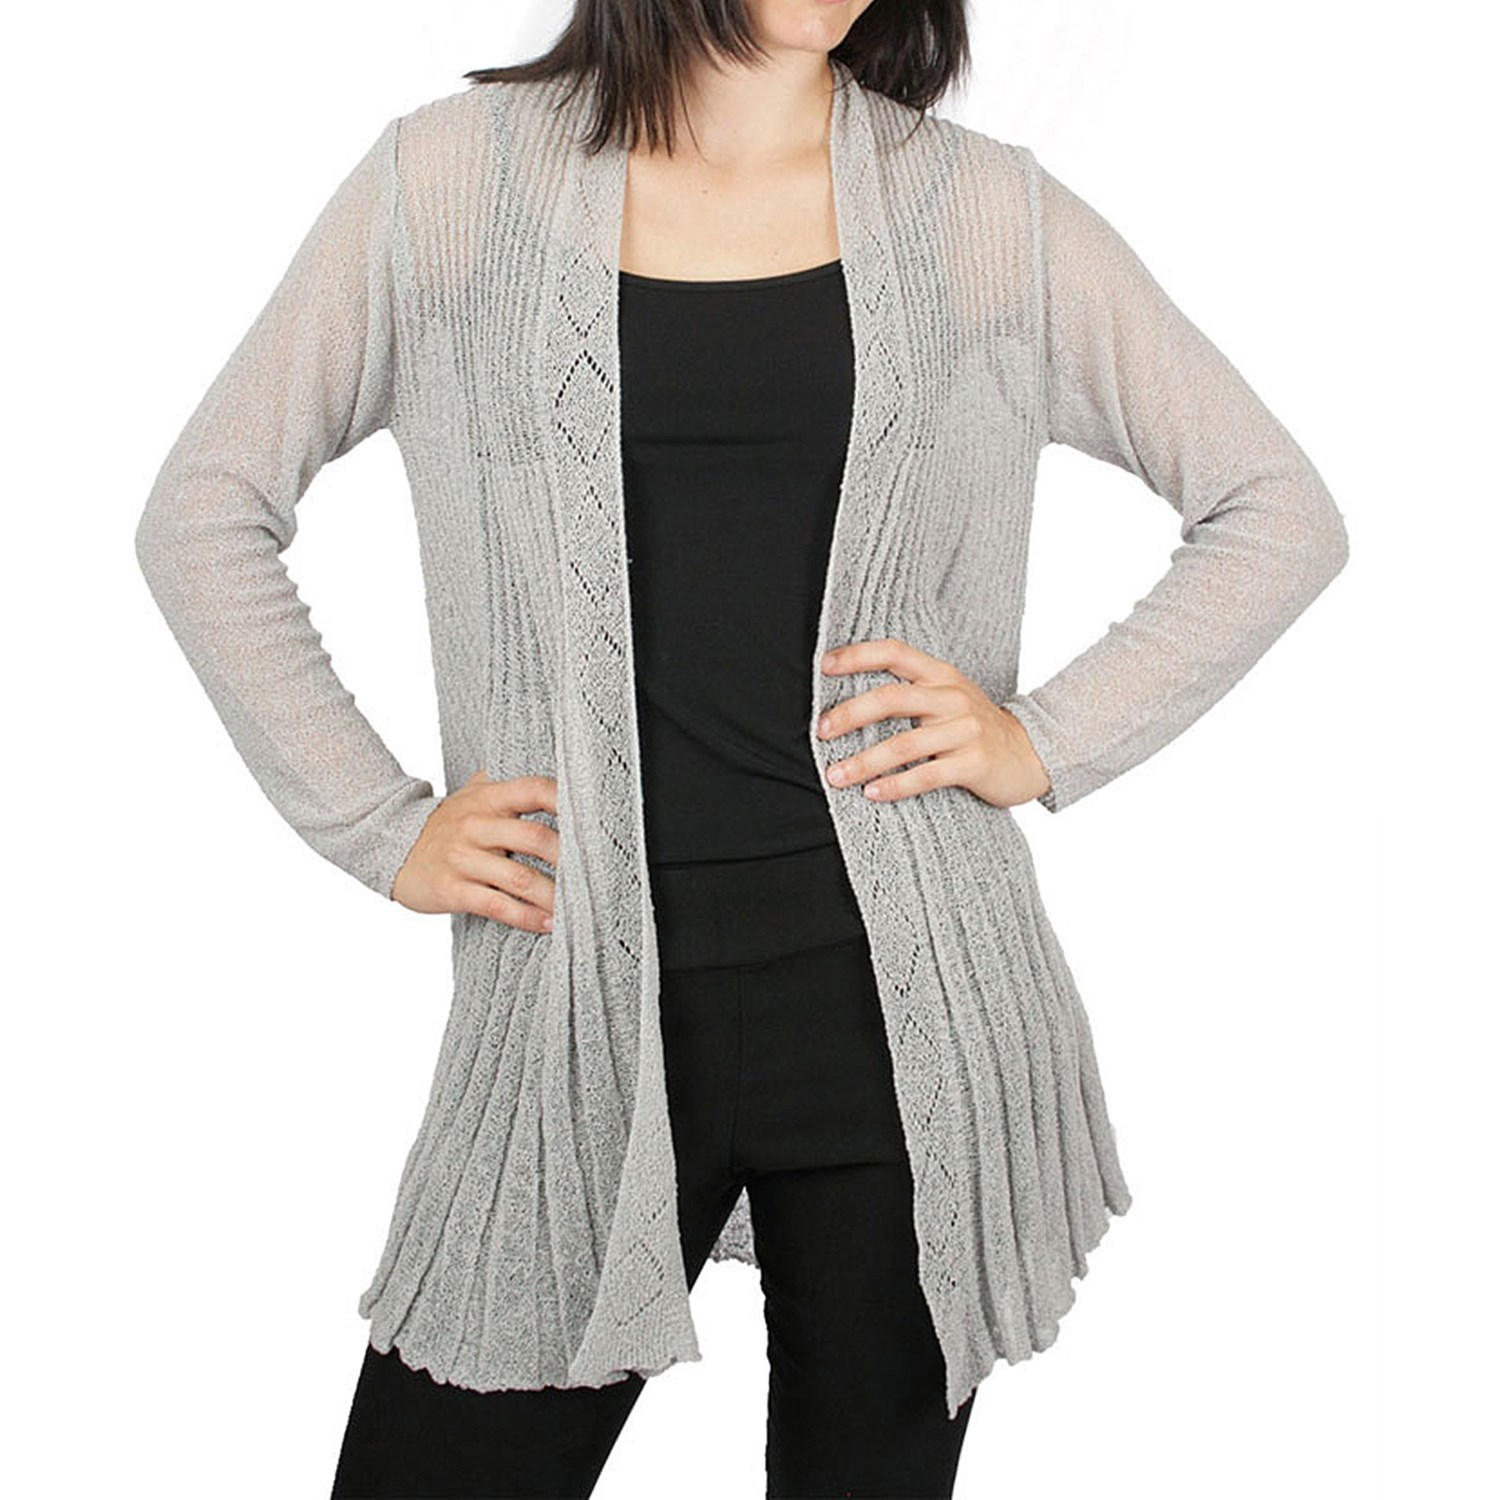 Shop our Collection of Women's Cardigan Sweaters at inerloadsr5s.gq for the Latest Designer Brands & Styles. FREE SHIPPING AVAILABLE! Macy's Presents: The Edit- A curated mix of fashion and inspiration Check It Out. Karen Scott Open-Front Cardigan, Created for Macy's.